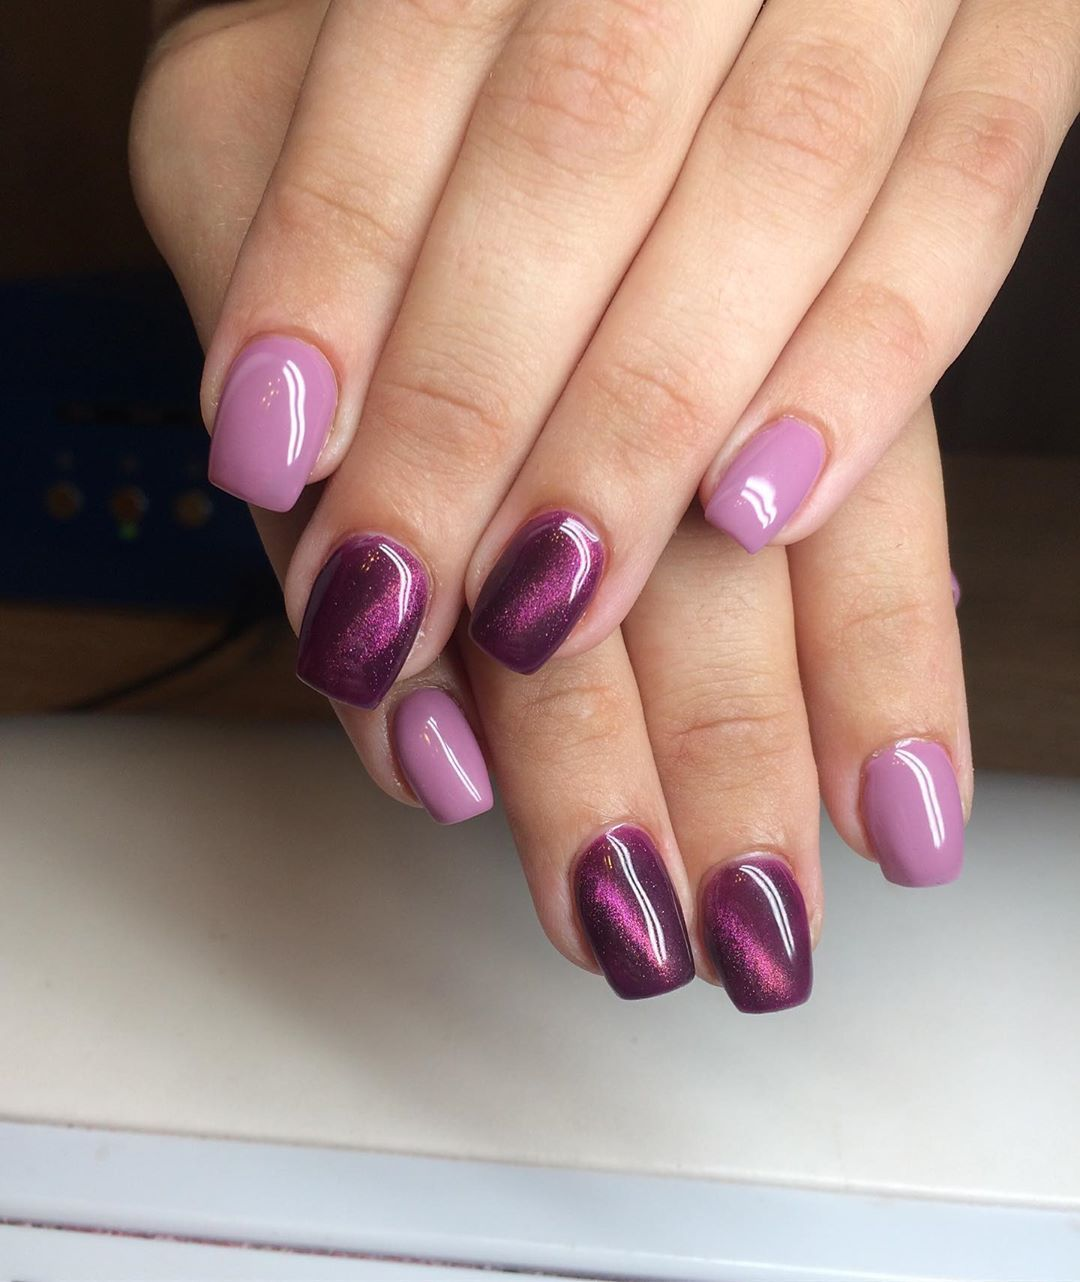 Pin By Custom Designs On Nails In 2019 Hollywood Nails Nails